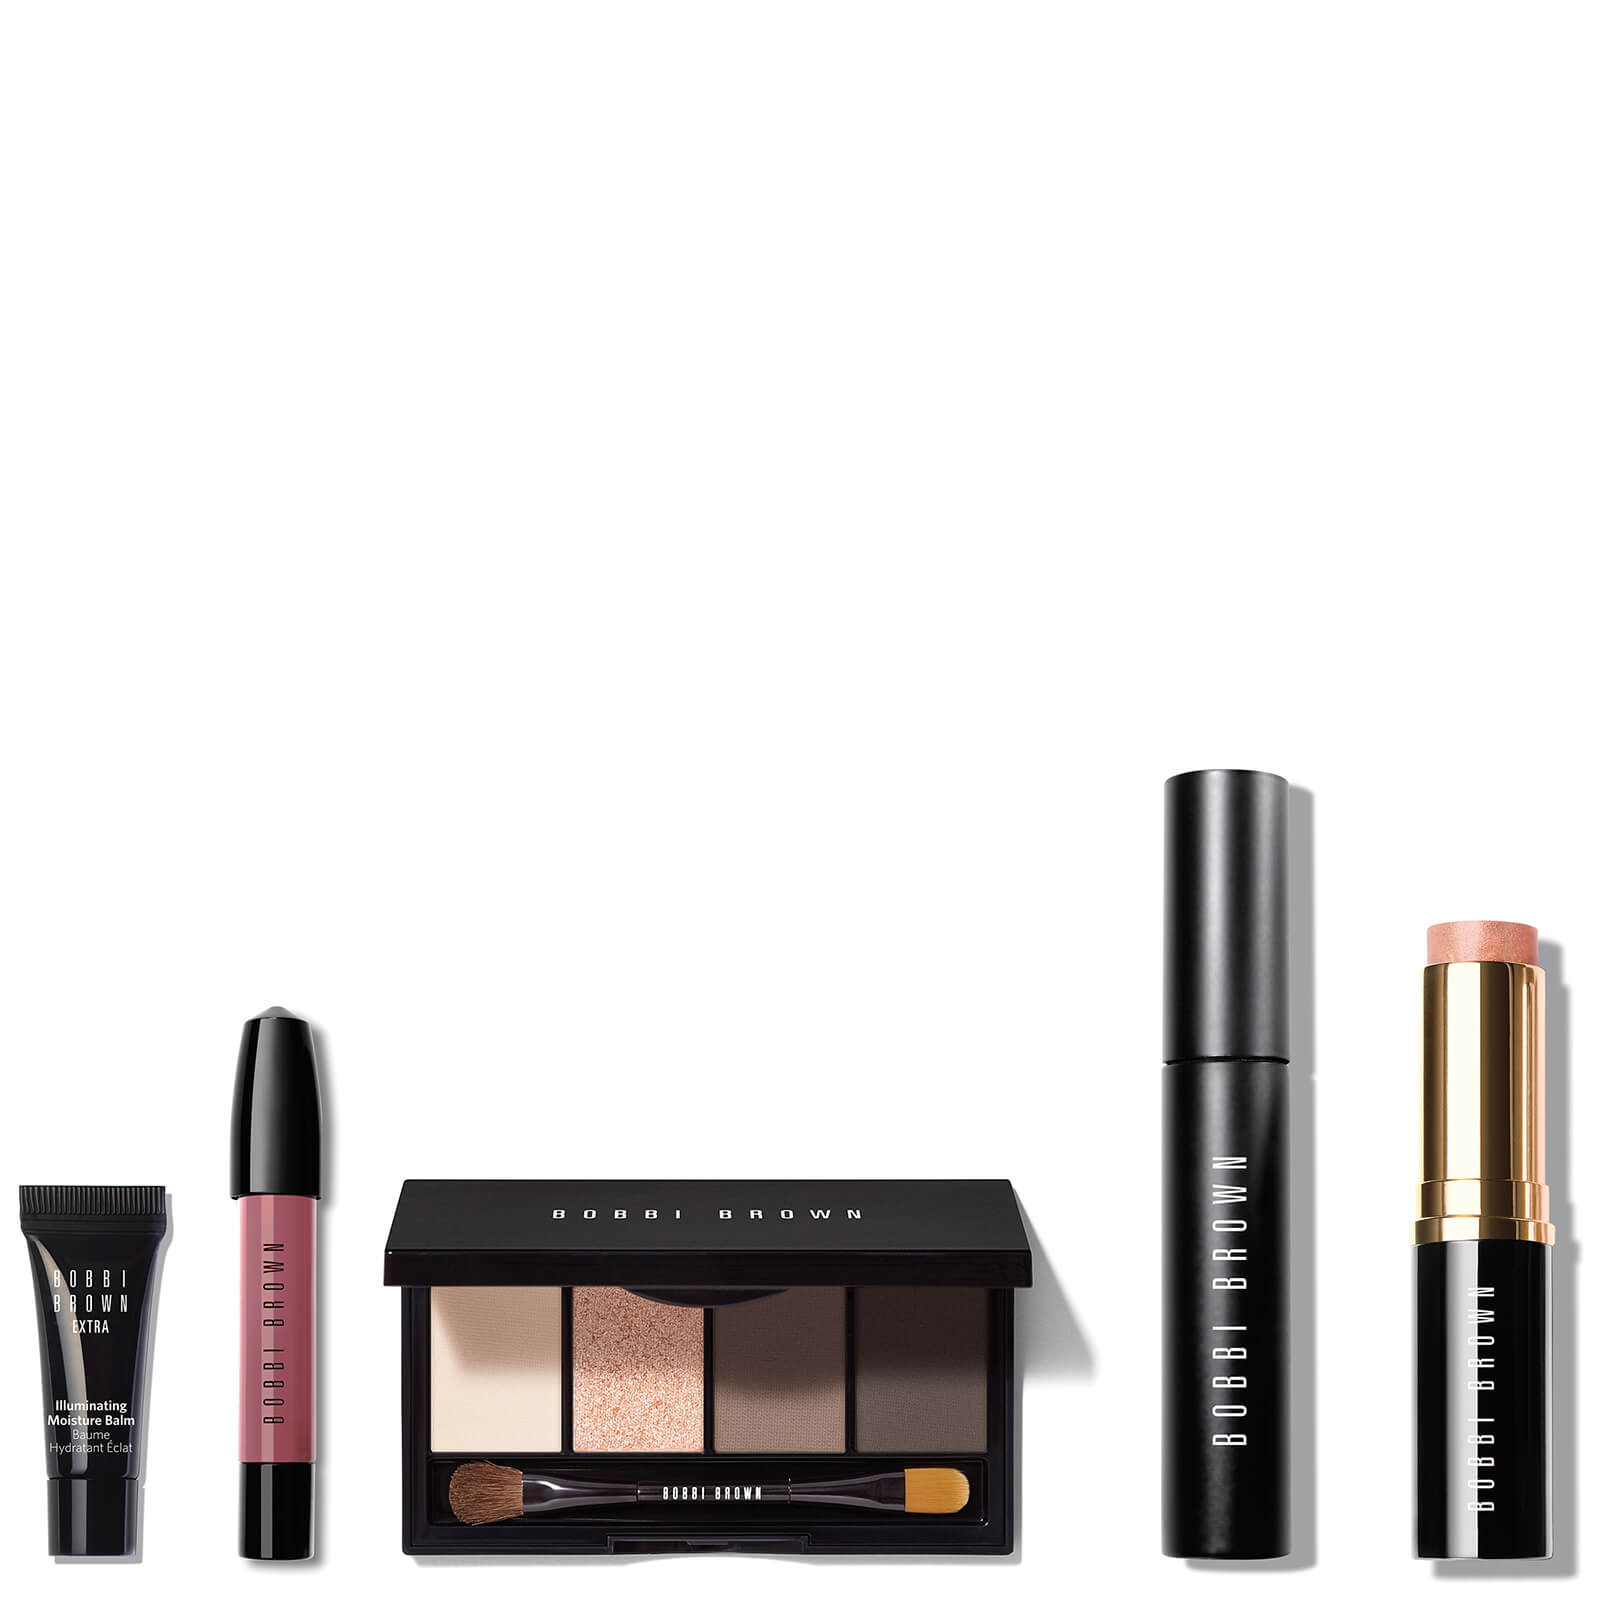 Bobbi Brown Ready In 5 Edition Eye Cheek And Lip Kit Free Illuminating Palette Limited Description Browns